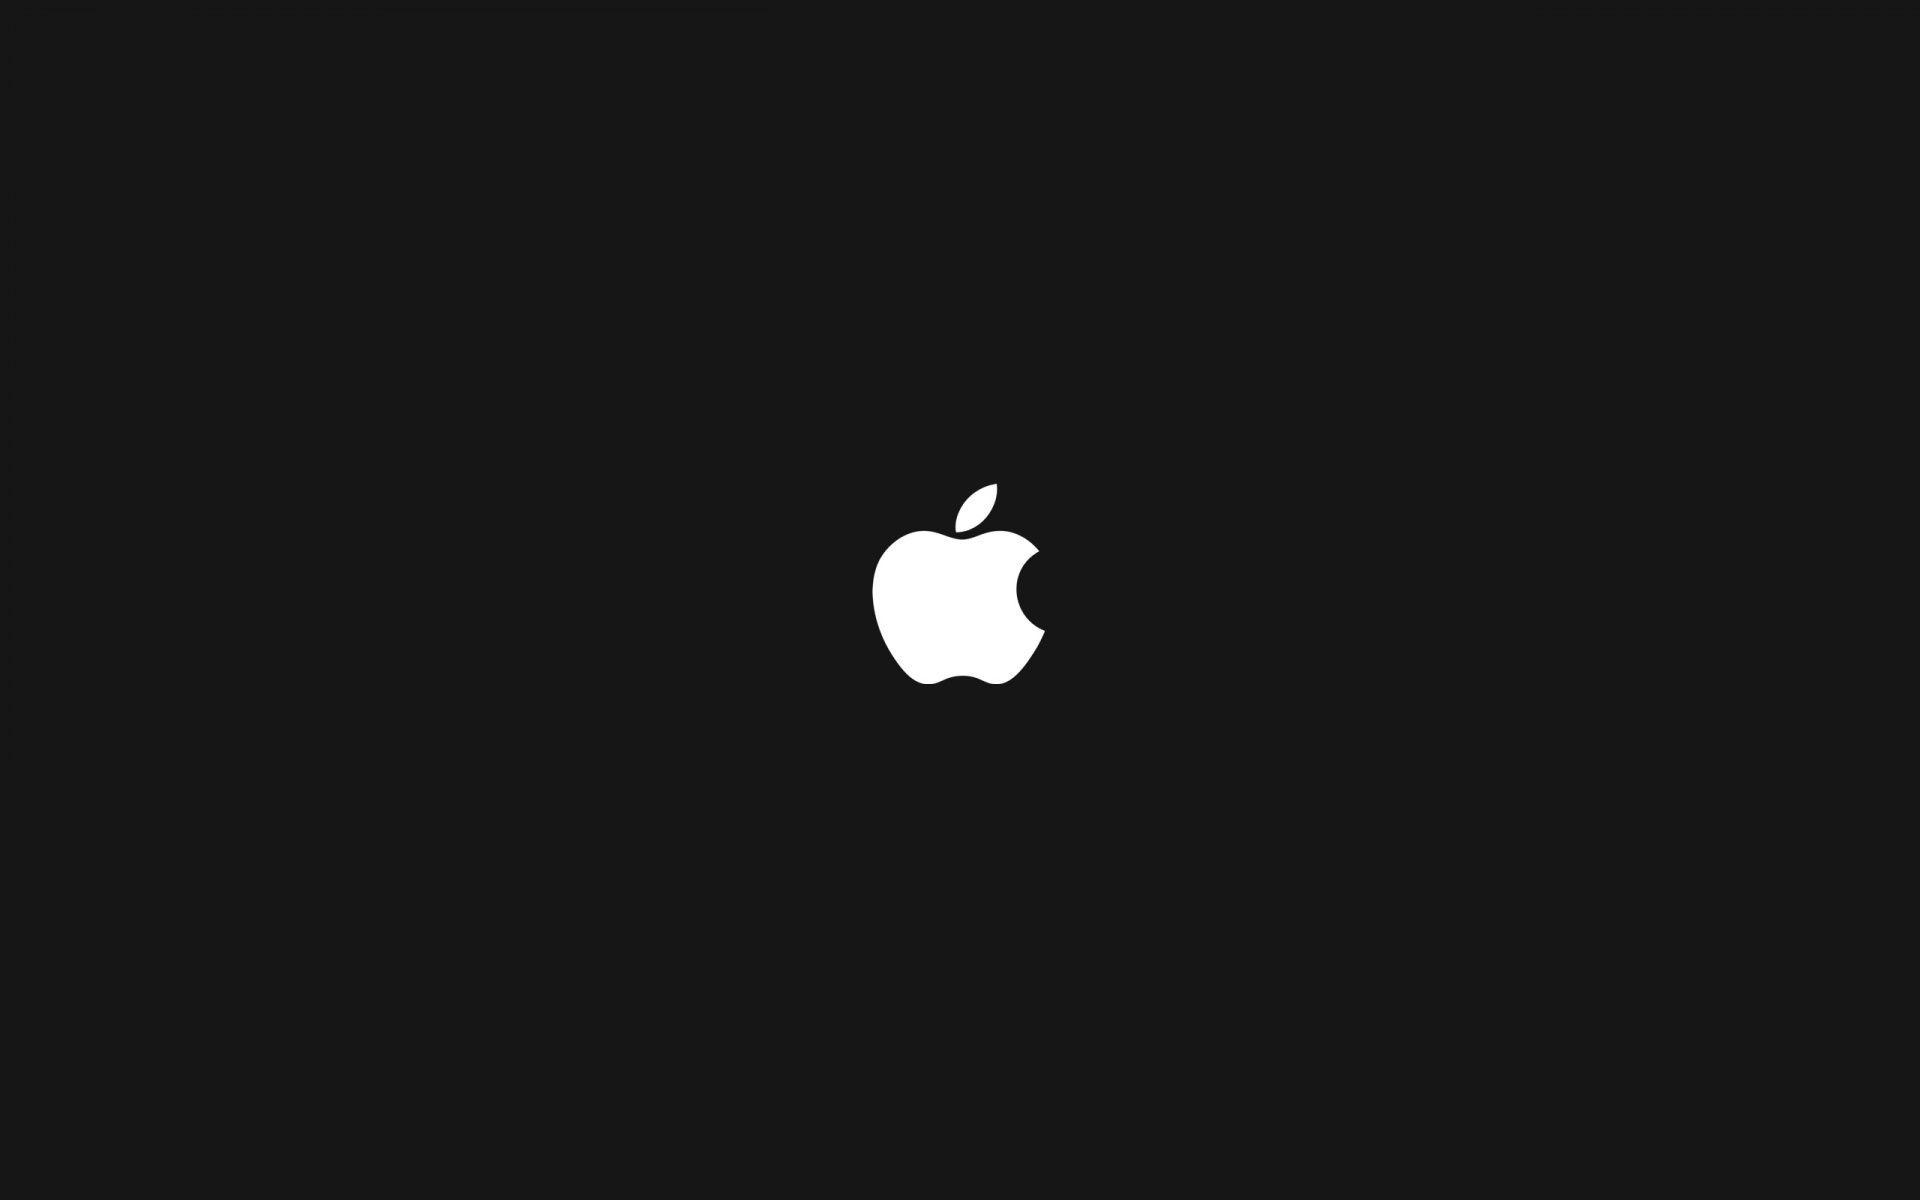 Black Apple Wallpapers - Full HD wallpaper search - page 11